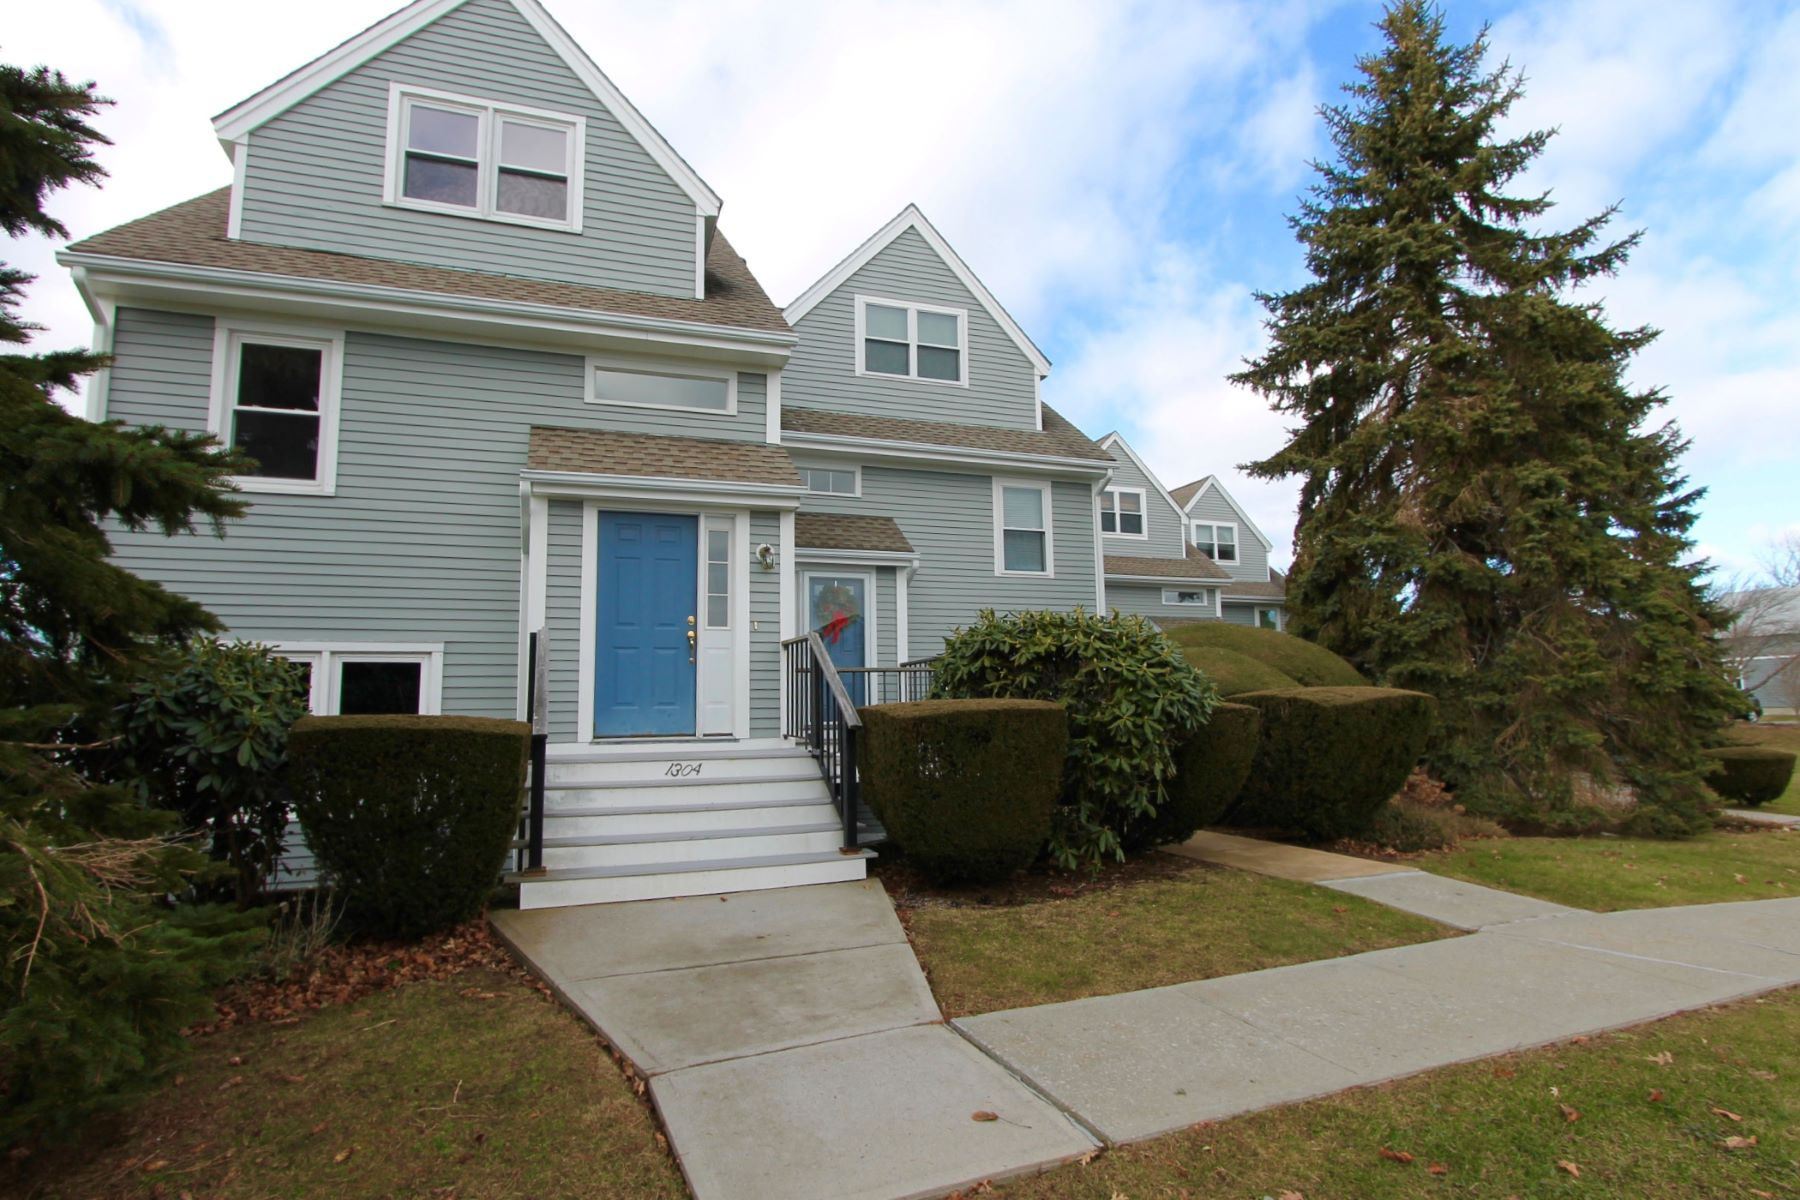 Condominium for Sale at Westridge 1304 Fairway Drive Middletown, Rhode Island 02842 United States